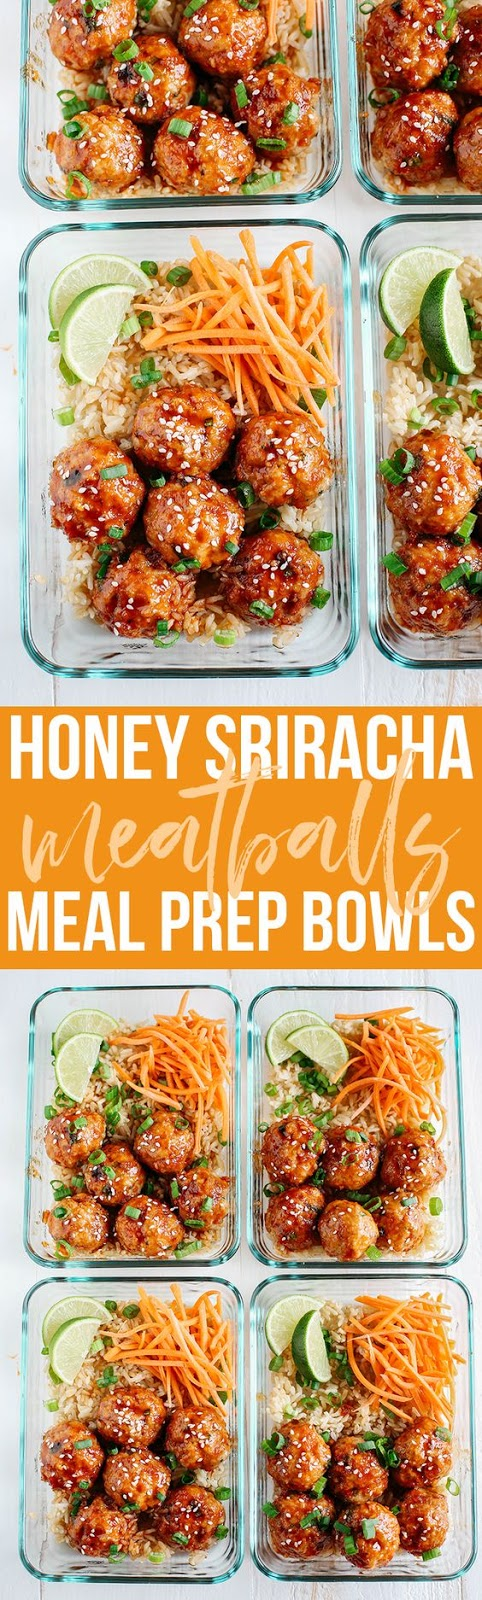 Honey Sriracha Glazed Meatballs   #DESSERTS #HEALTHYFOOD #EASYRECIPES #DINNER #LAUCH #DELICIOUS #EASY #HOLIDAYS #RECIPE #SPECIALDIET #WORLDCUISINE #CAKE #APPETIZERS #HEALTHYRECIPES #DRINKS #COOKINGMETHOD #ITALIANRECIPES #MEAT #VEGANRECIPES #COOKIES #PASTA #FRUIT #SALAD #SOUPAPPETIZERS #NONALCOHOLICDRINKS #MEALPLANNING #VEGETABLES #SOUP #PASTRY #CHOCOLATE #DAIRY #ALCOHOLICDRINKS #BULGURSALAD #BAKING #SNACKS #BEEFRECIPES #MEATAPPETIZERS #MEXICANRECIPES #BREAD #ASIANRECIPES #SEAFOODAPPETIZERS #MUFFINS #BREAKFASTANDBRUNCH #CONDIMENTS #CUPCAKES #CHEESE #CHICKENRECIPES #PIE #COFFEE #NOBAKEDESSERTS #HEALTHYSNACKS #SEAFOOD #GRAIN #LUNCHESDINNERS #MEXICAN #QUICKBREAD #LIQUOR